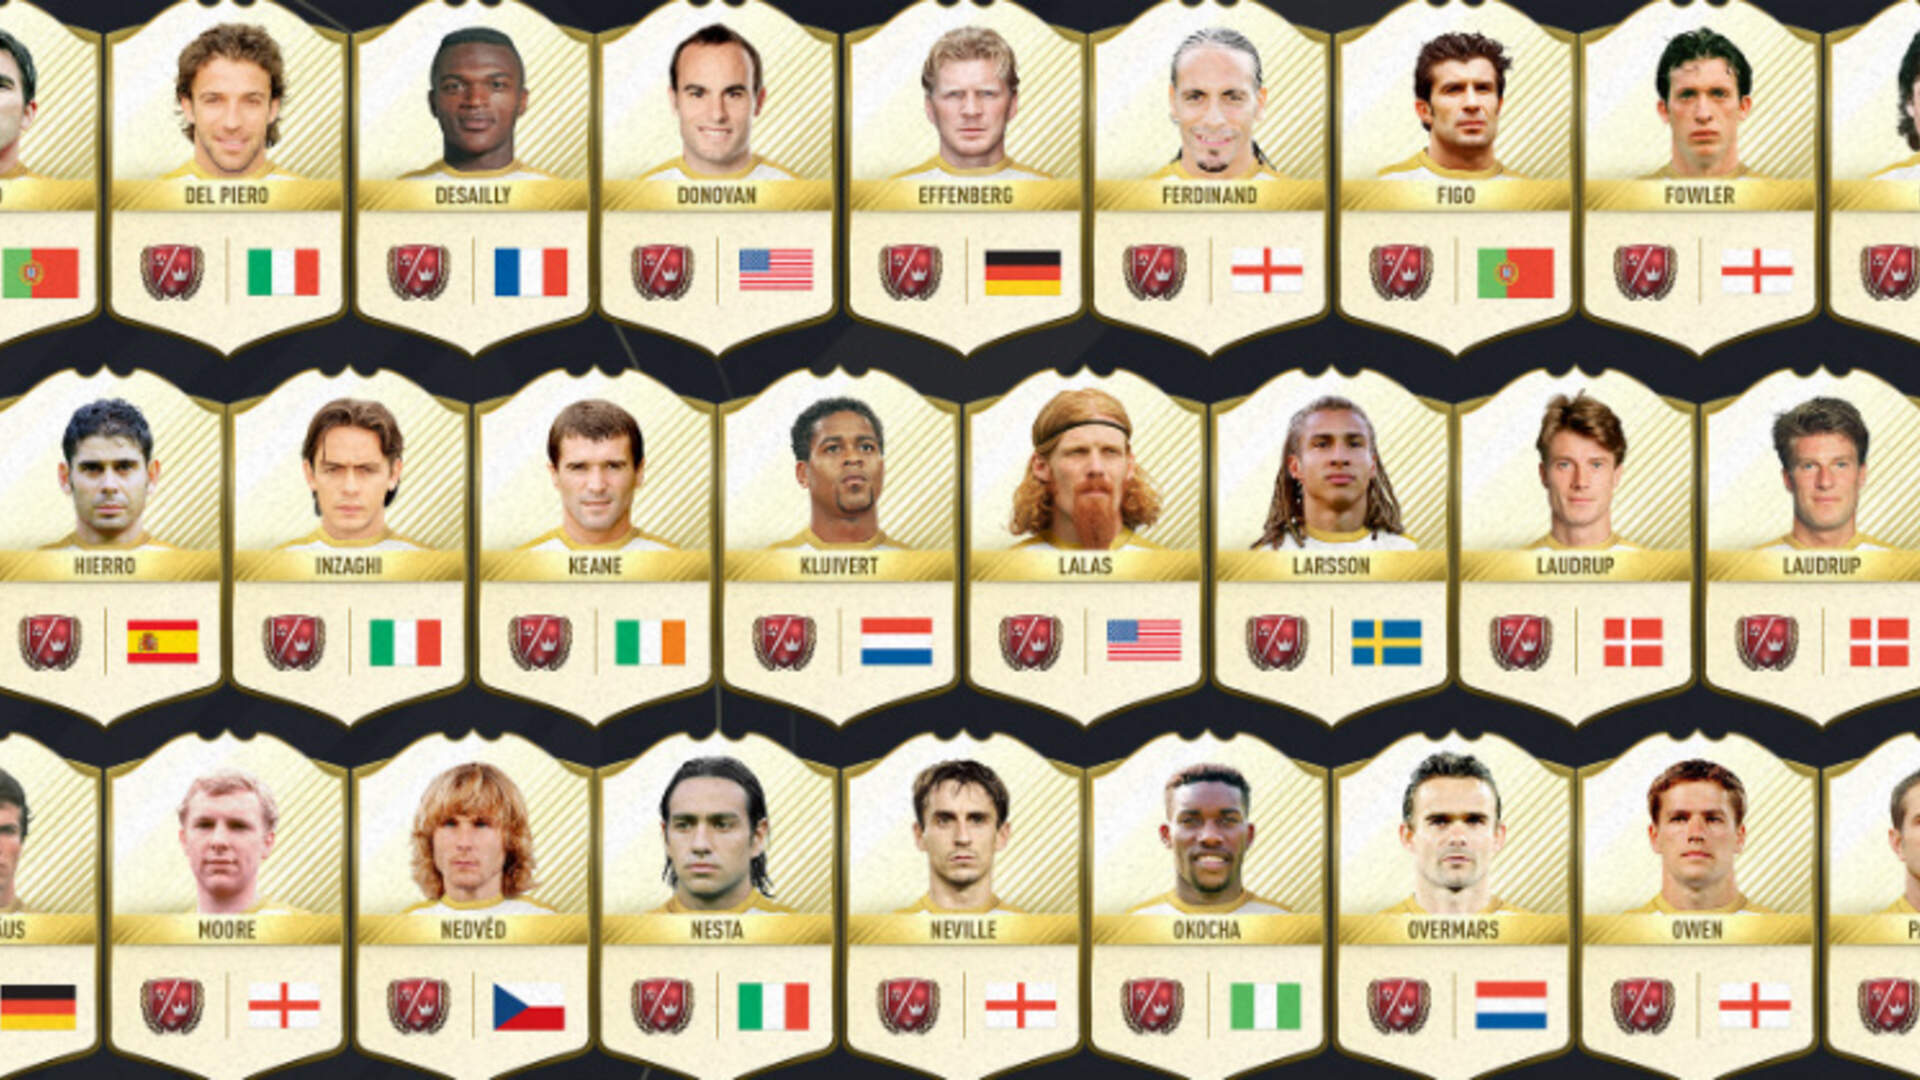 FIFA 17 Ultimate Team Guide and Tips: Build your team, earn coins, use the transfer market